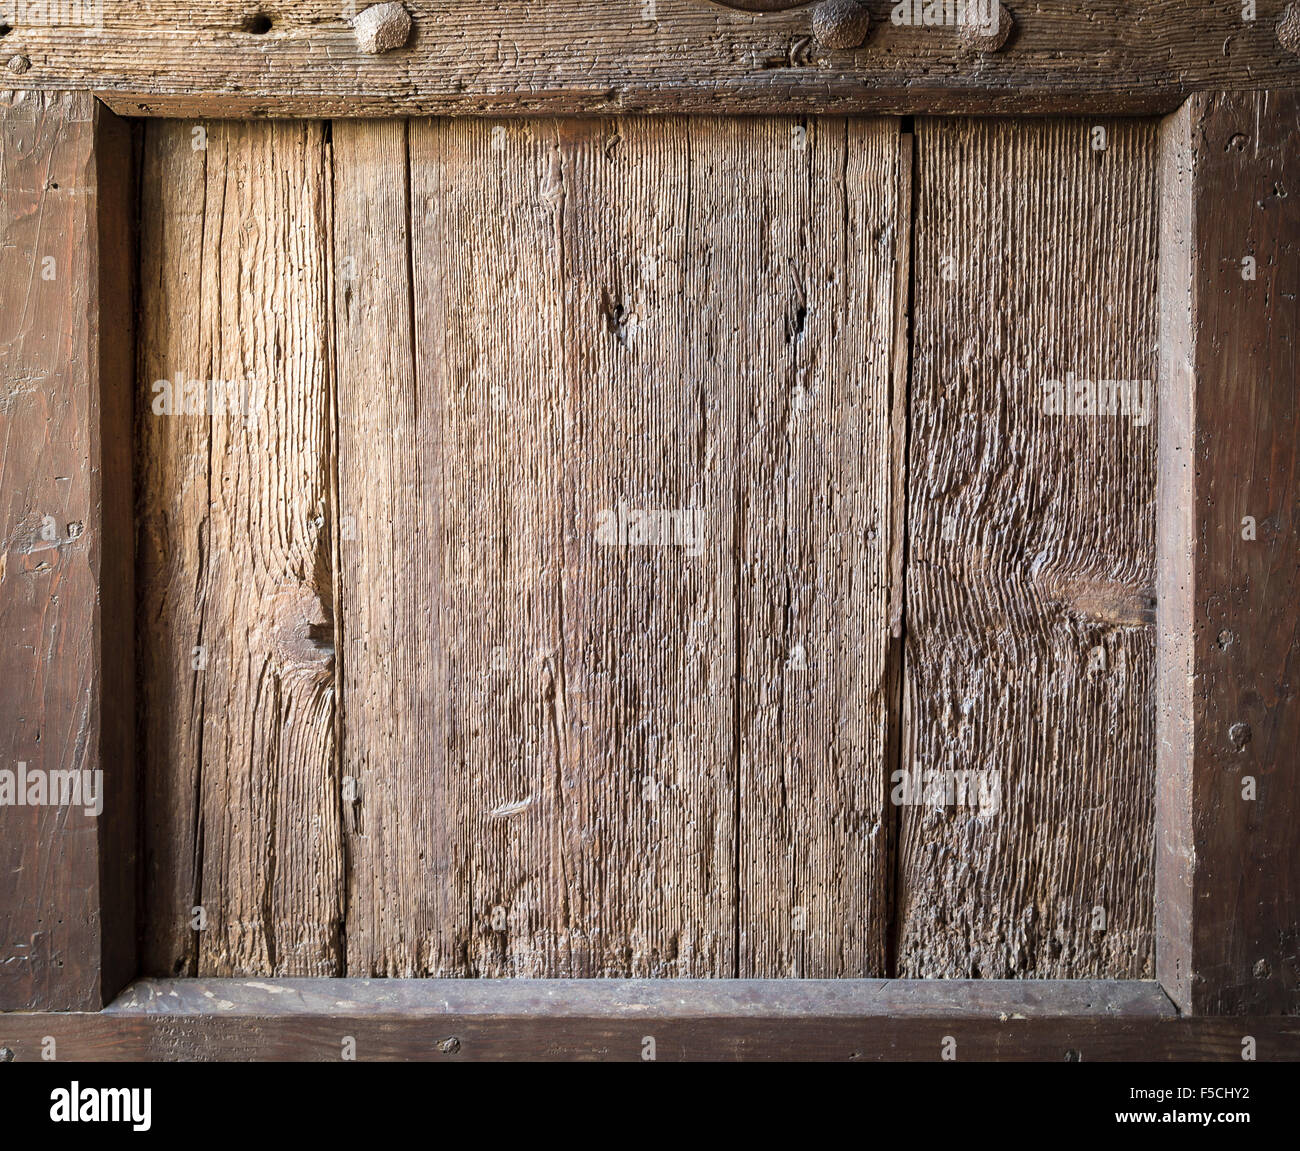 Rustic wood frame with vintage effect - Stock Image